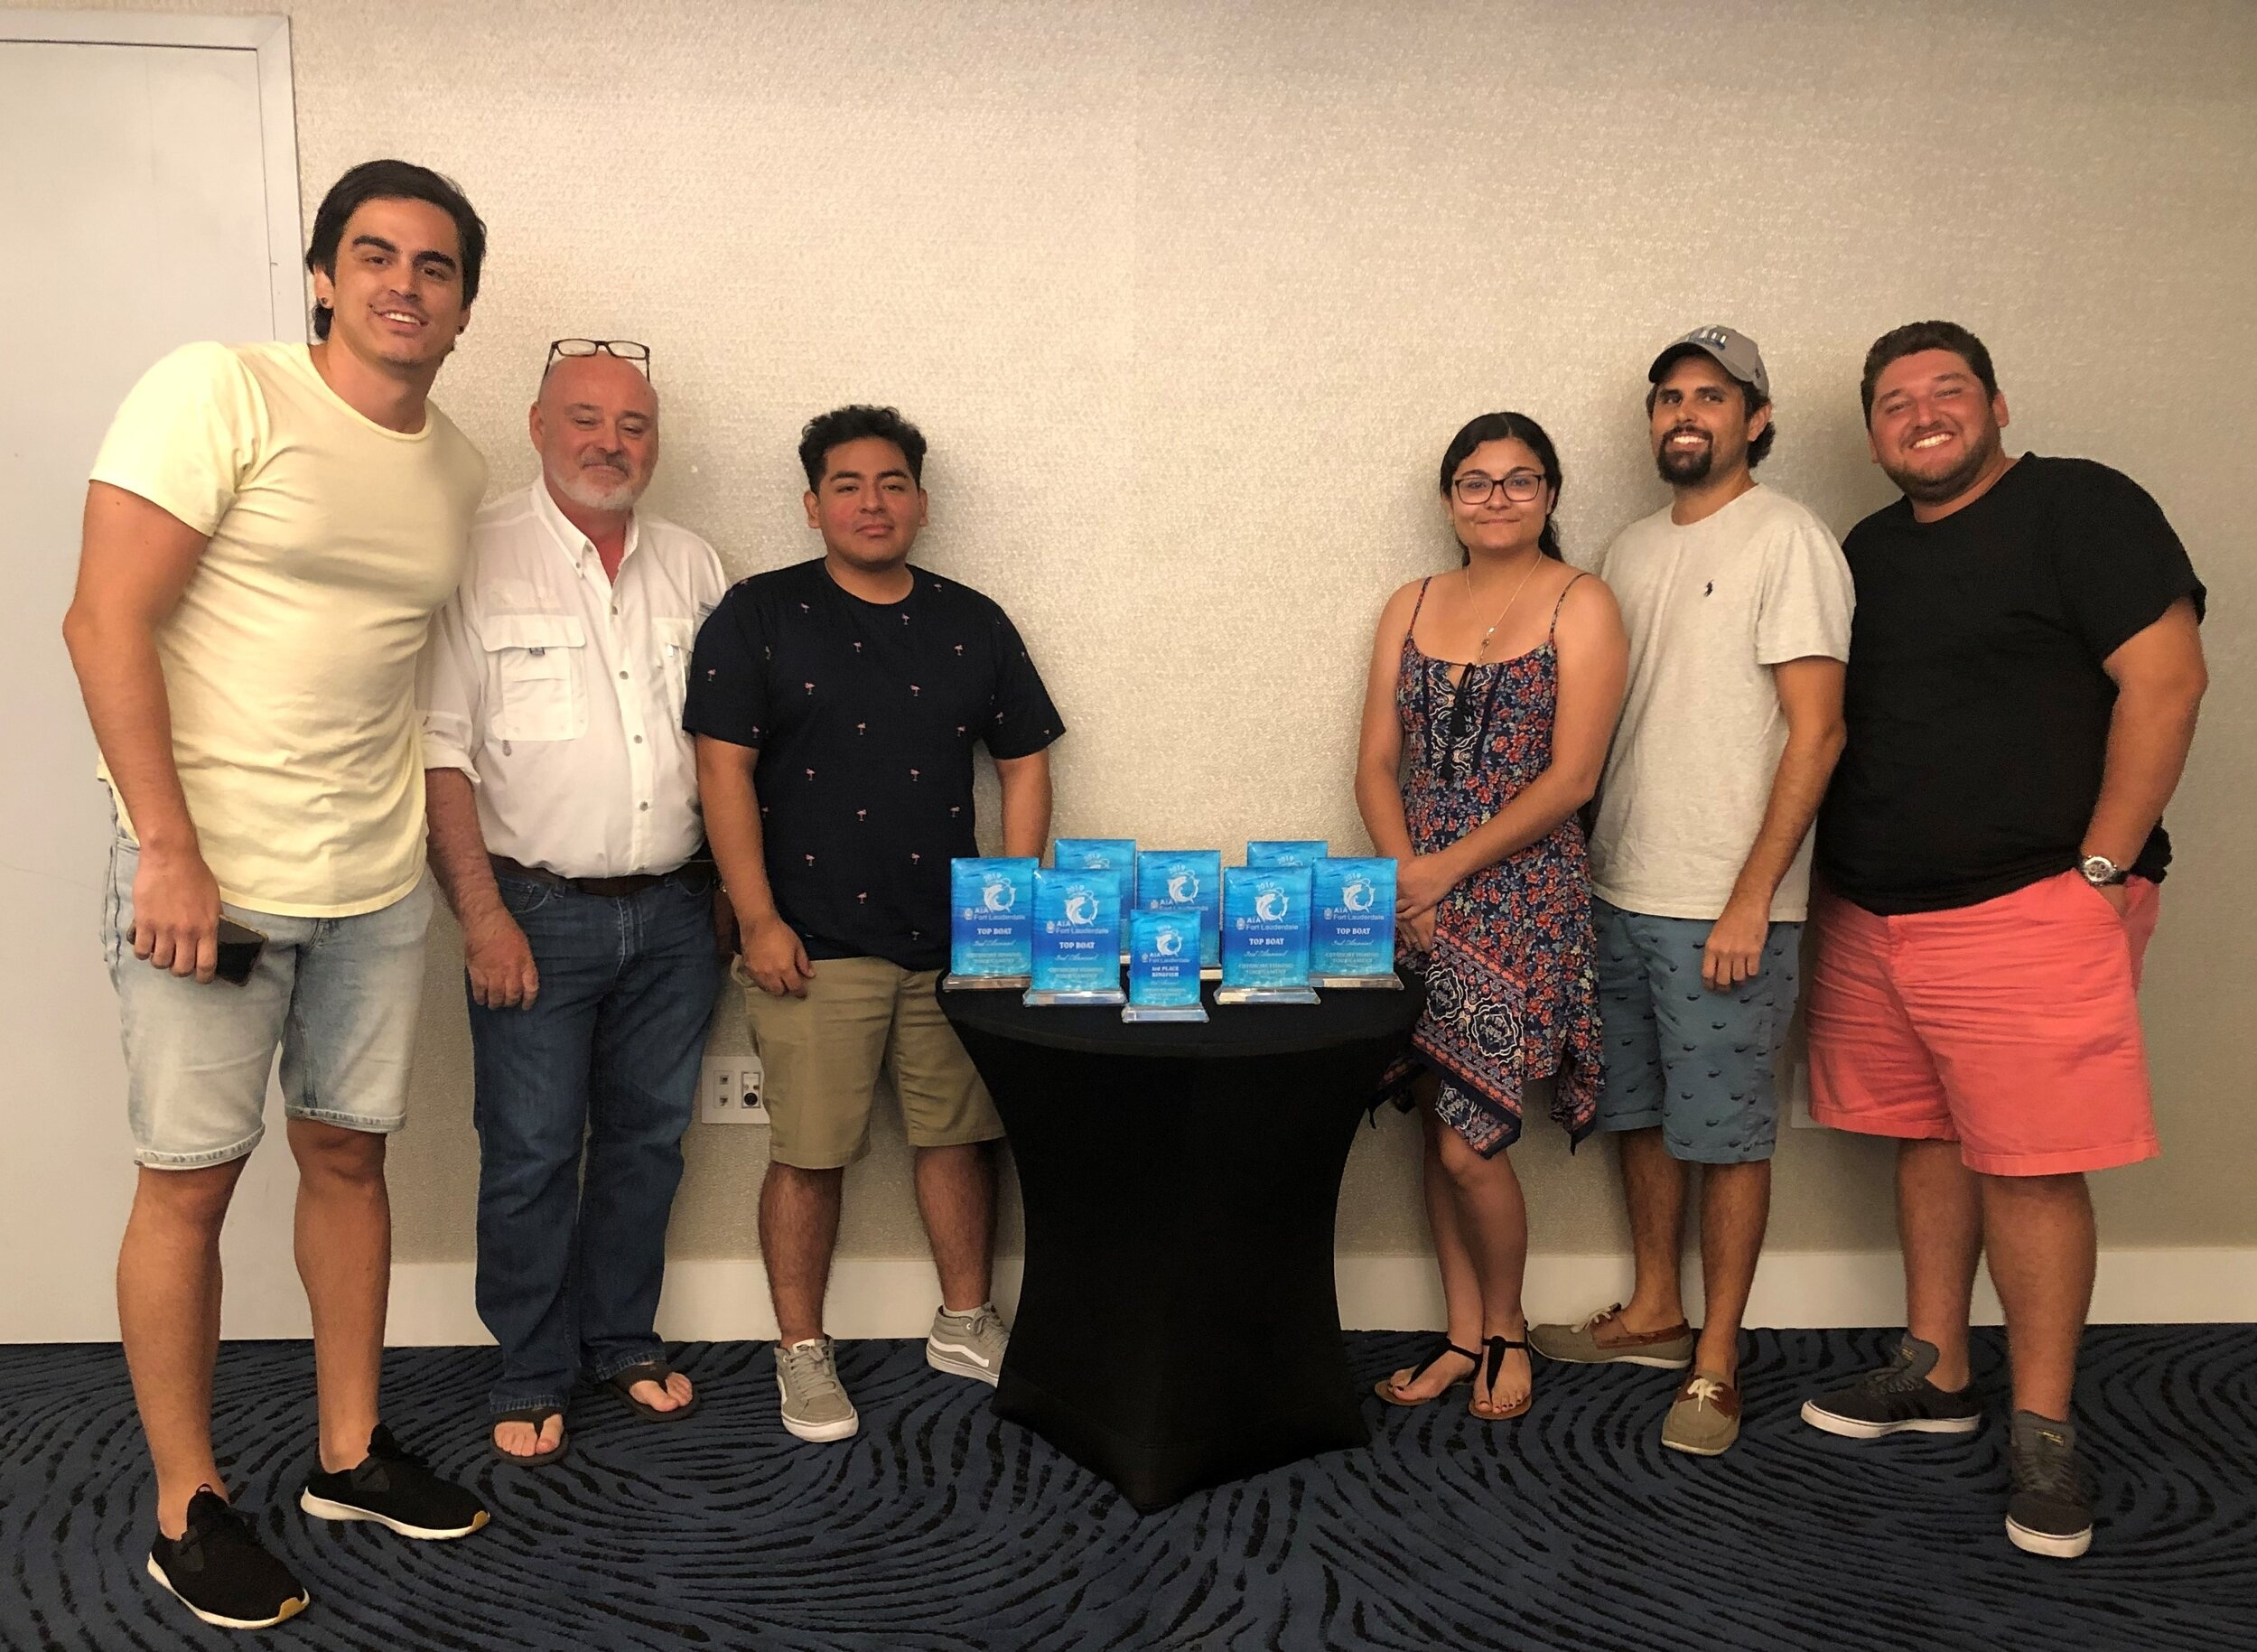 The Arcwerks team reeled in the Best Boat award at the AIA Ft. Lauderdale 2019  Fishing Tournament